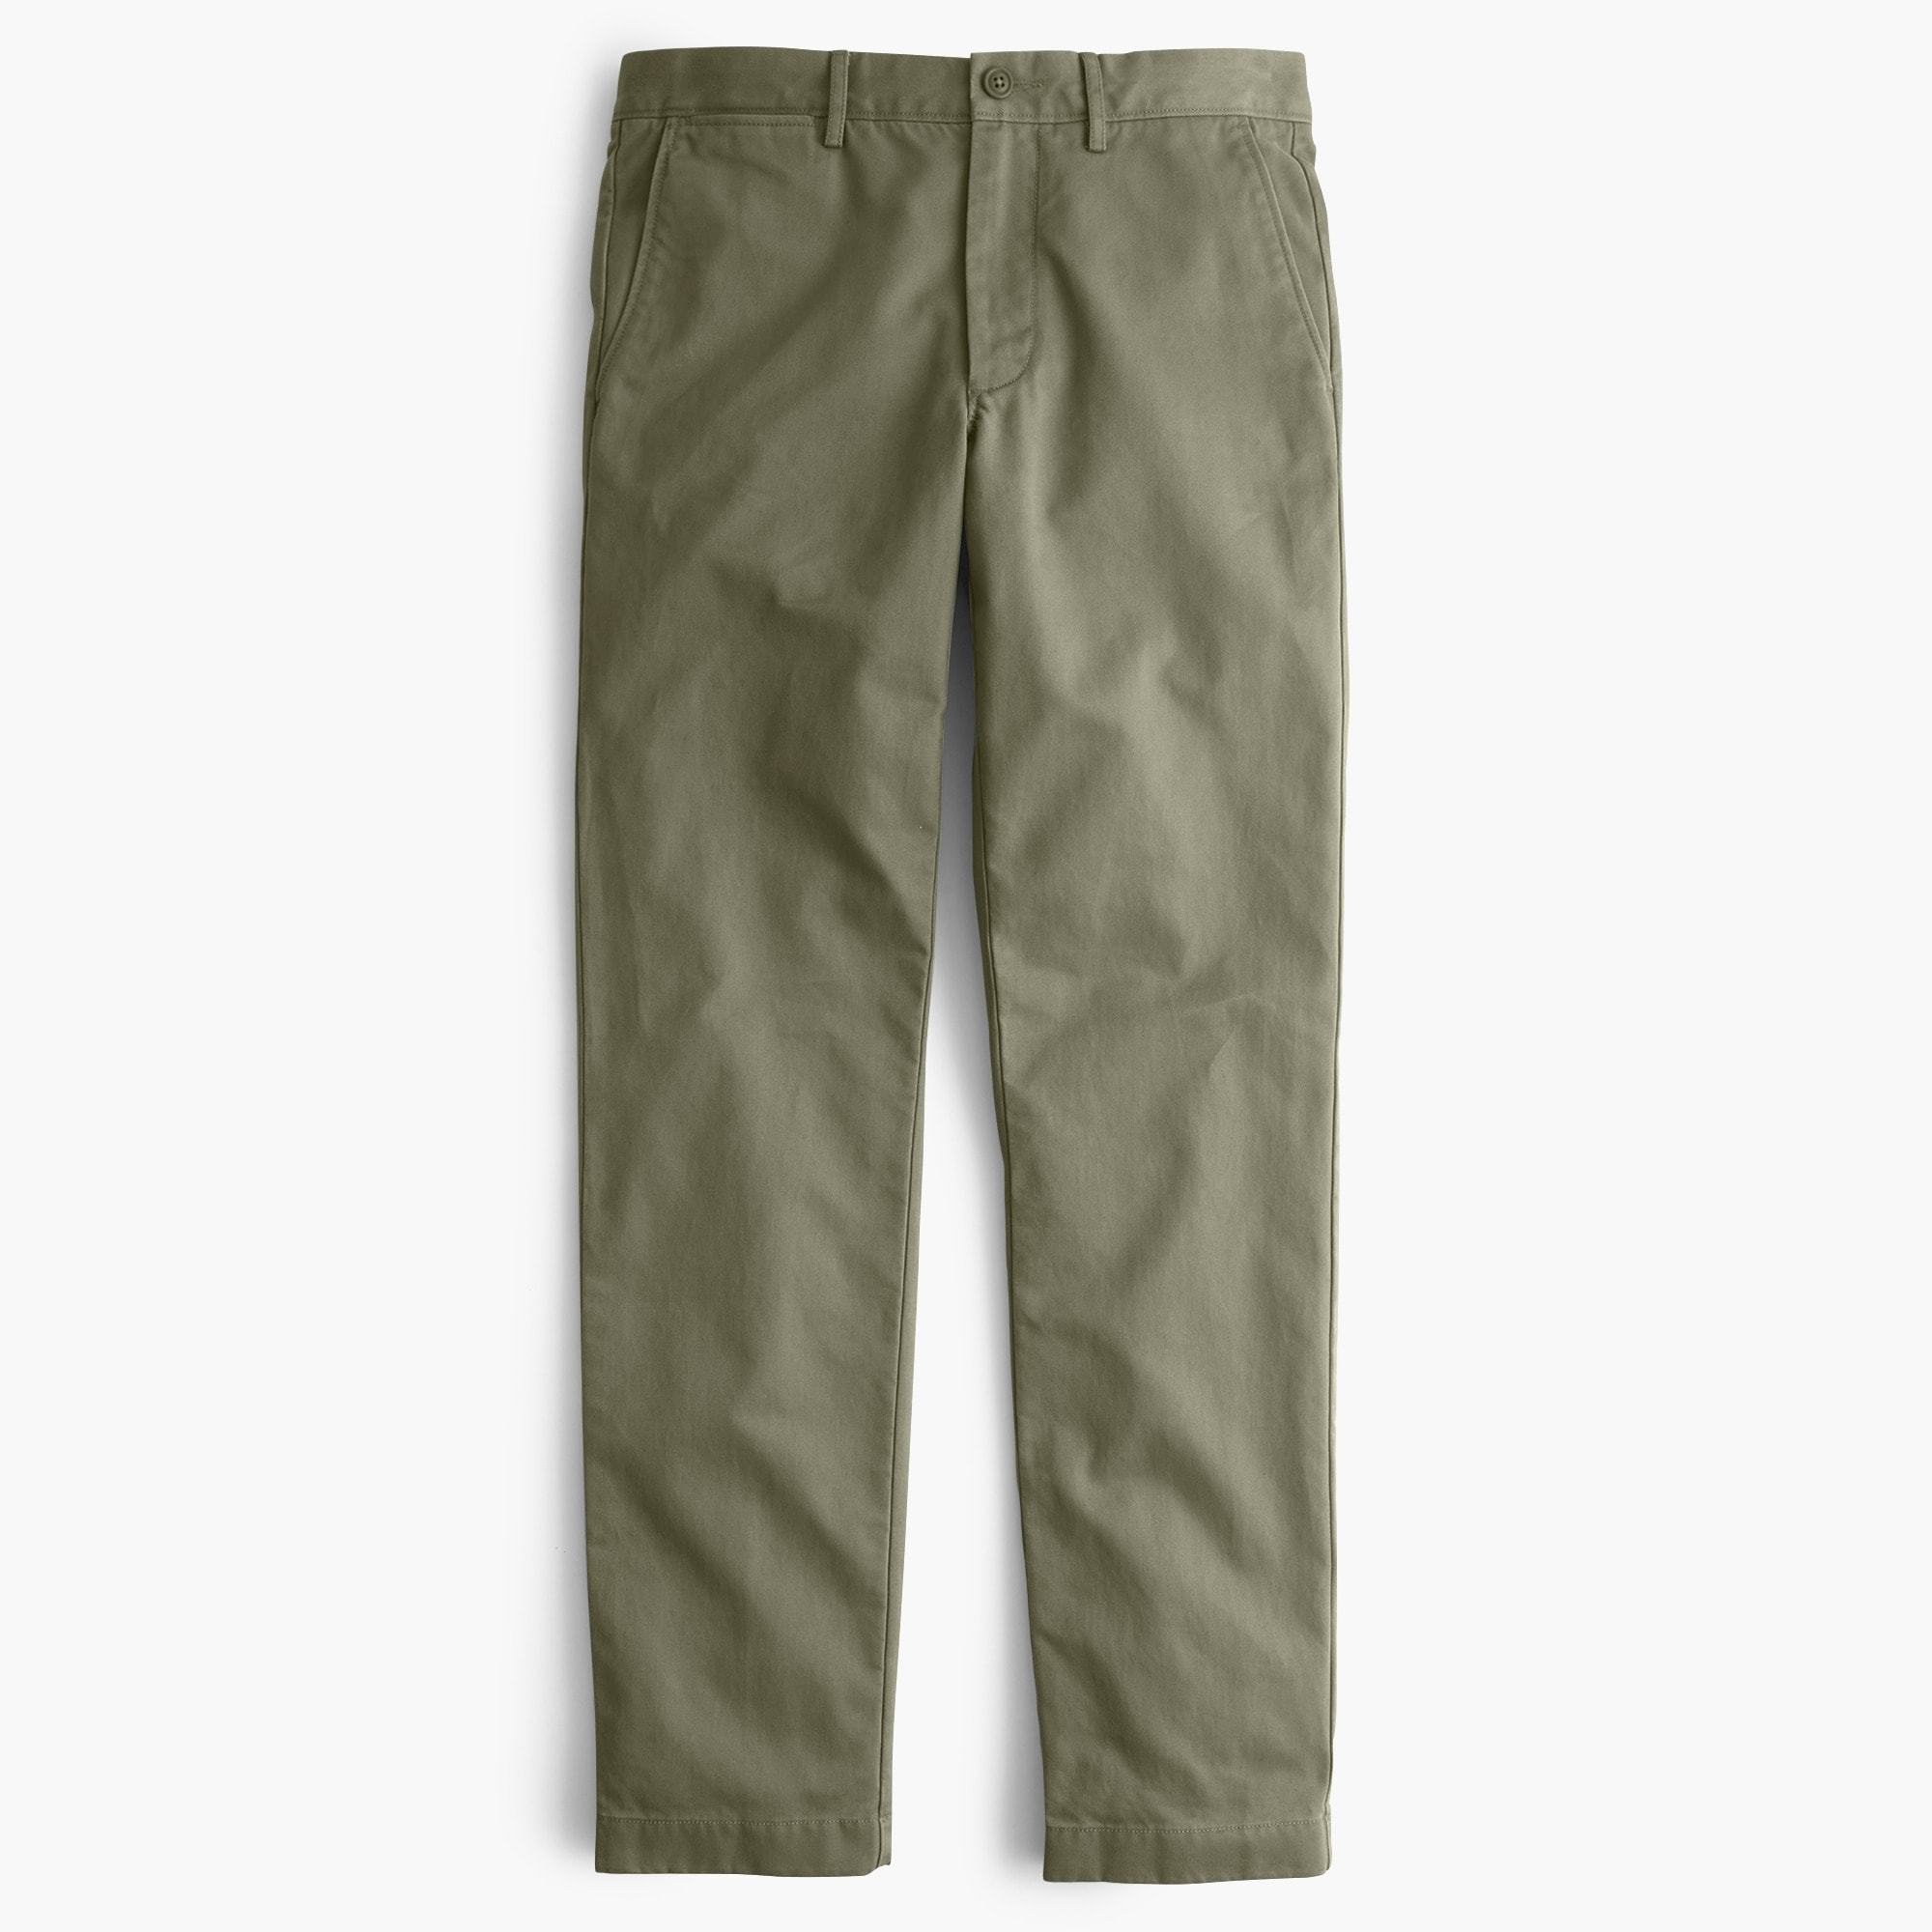 770 Straight-fit pant in Broken-in chino